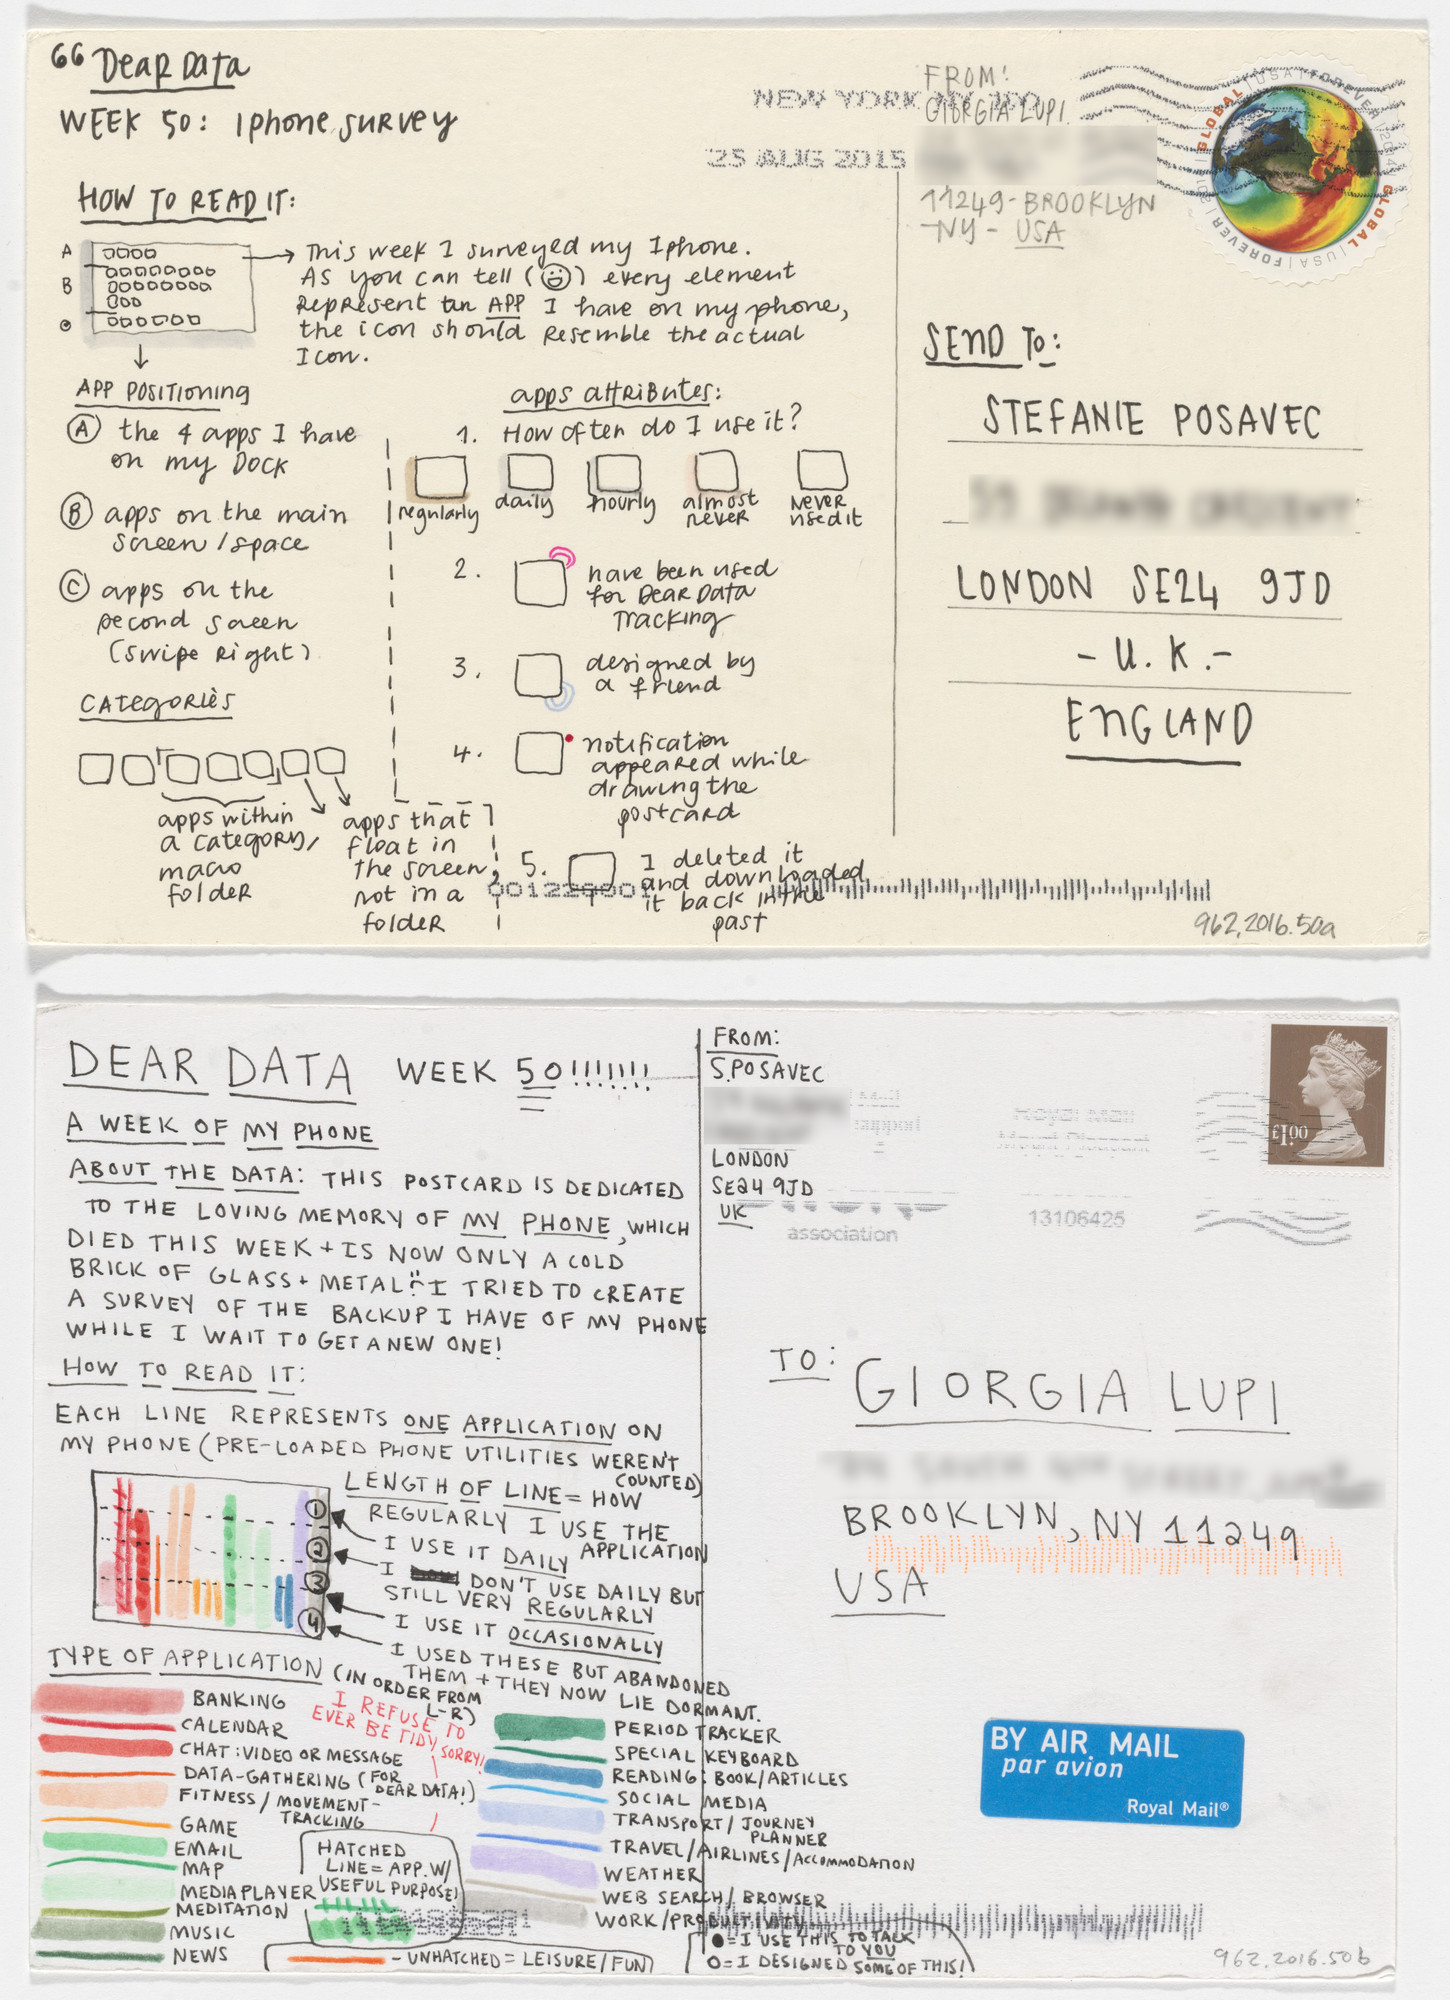 Giorgia Lupi, Stefanie Posavec. Dear Data: Week 50 (iPhone Survey / A Week of My Phone). 2015